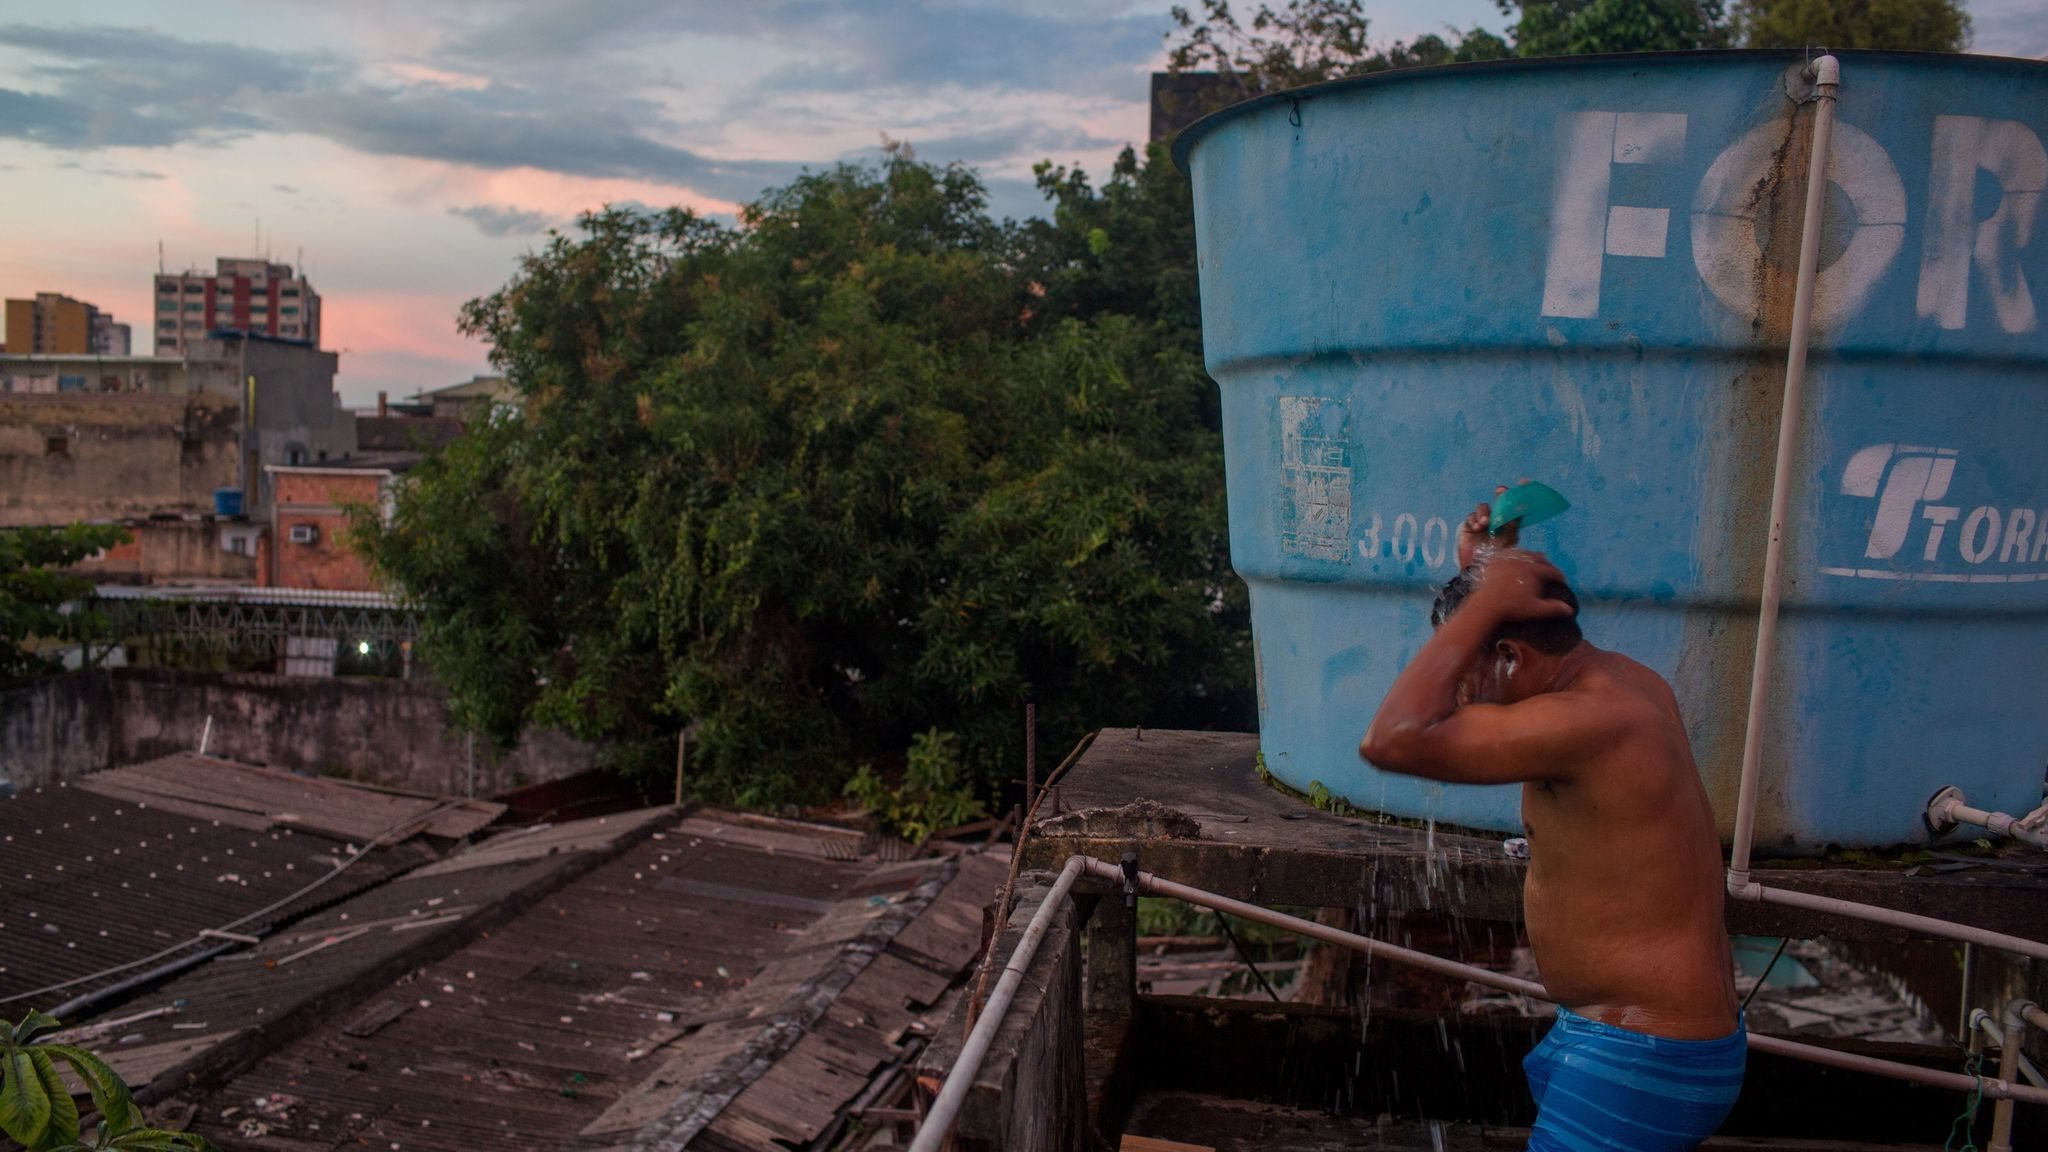 A Warao man bathes on a rooftop in Manaus, Brazil. About 350 Warao Indians live in public squares and old mansions in central Manaus.